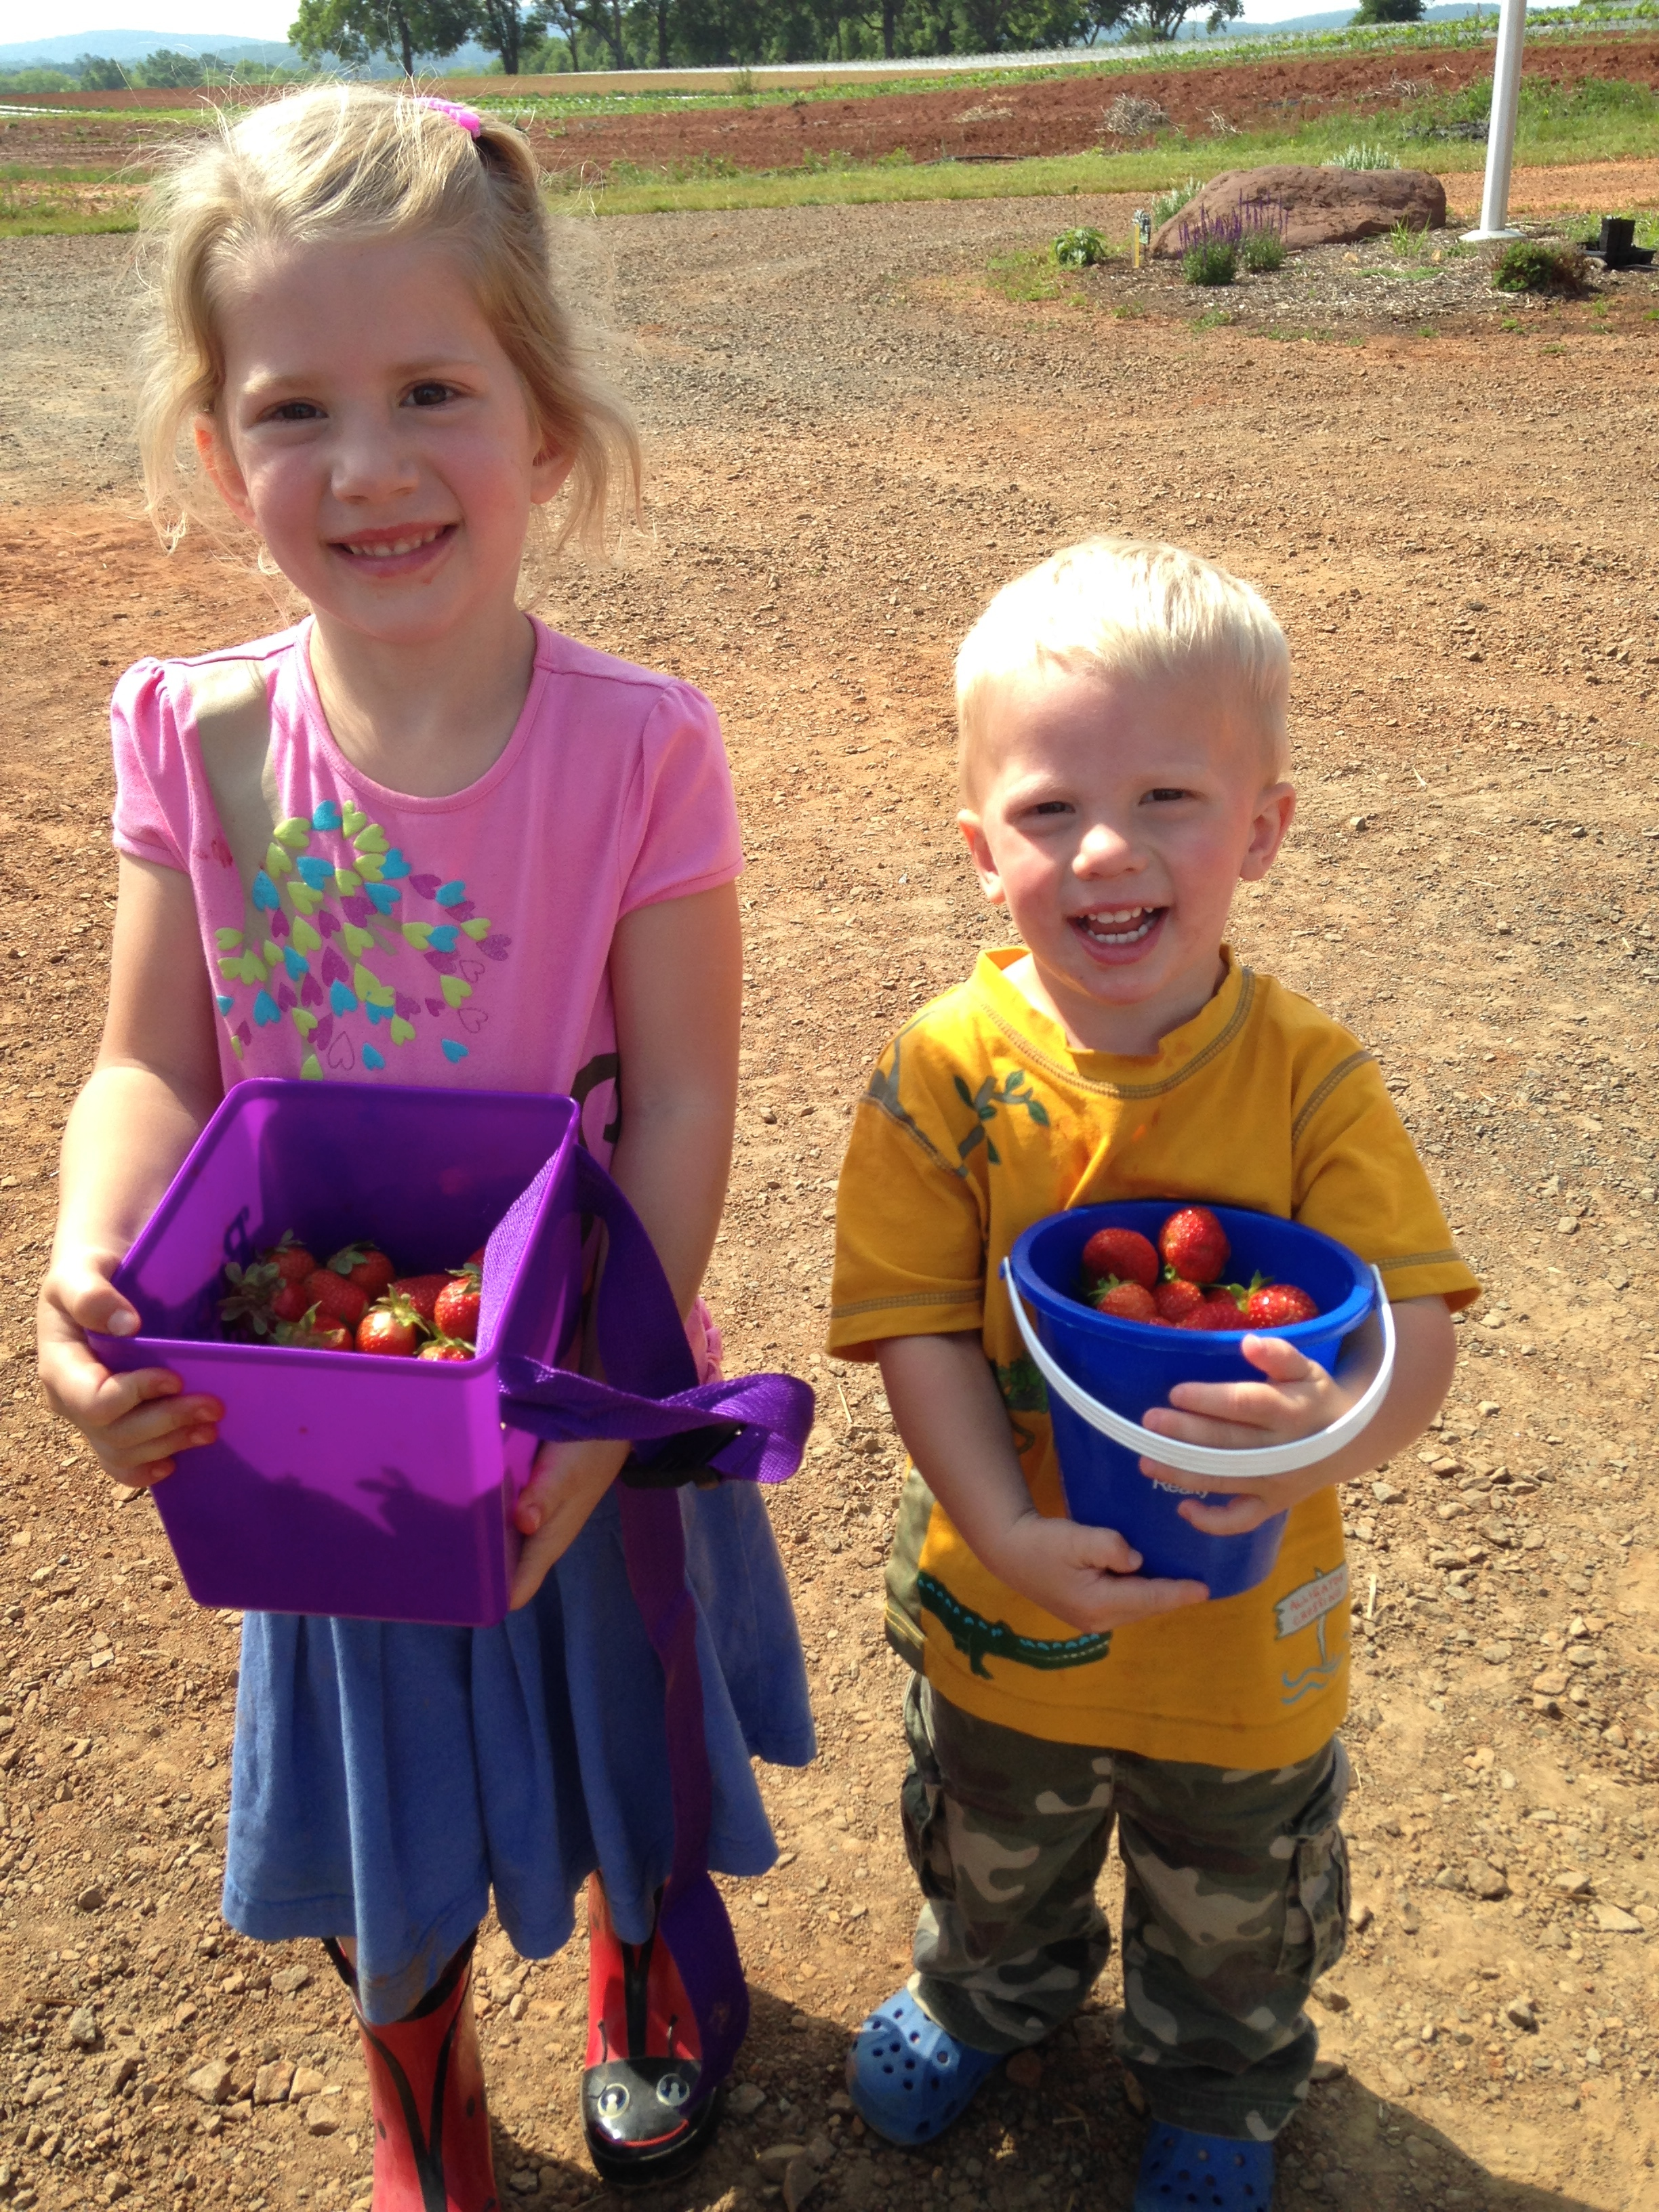 Kaylin and Kolby did a great job picking berries.